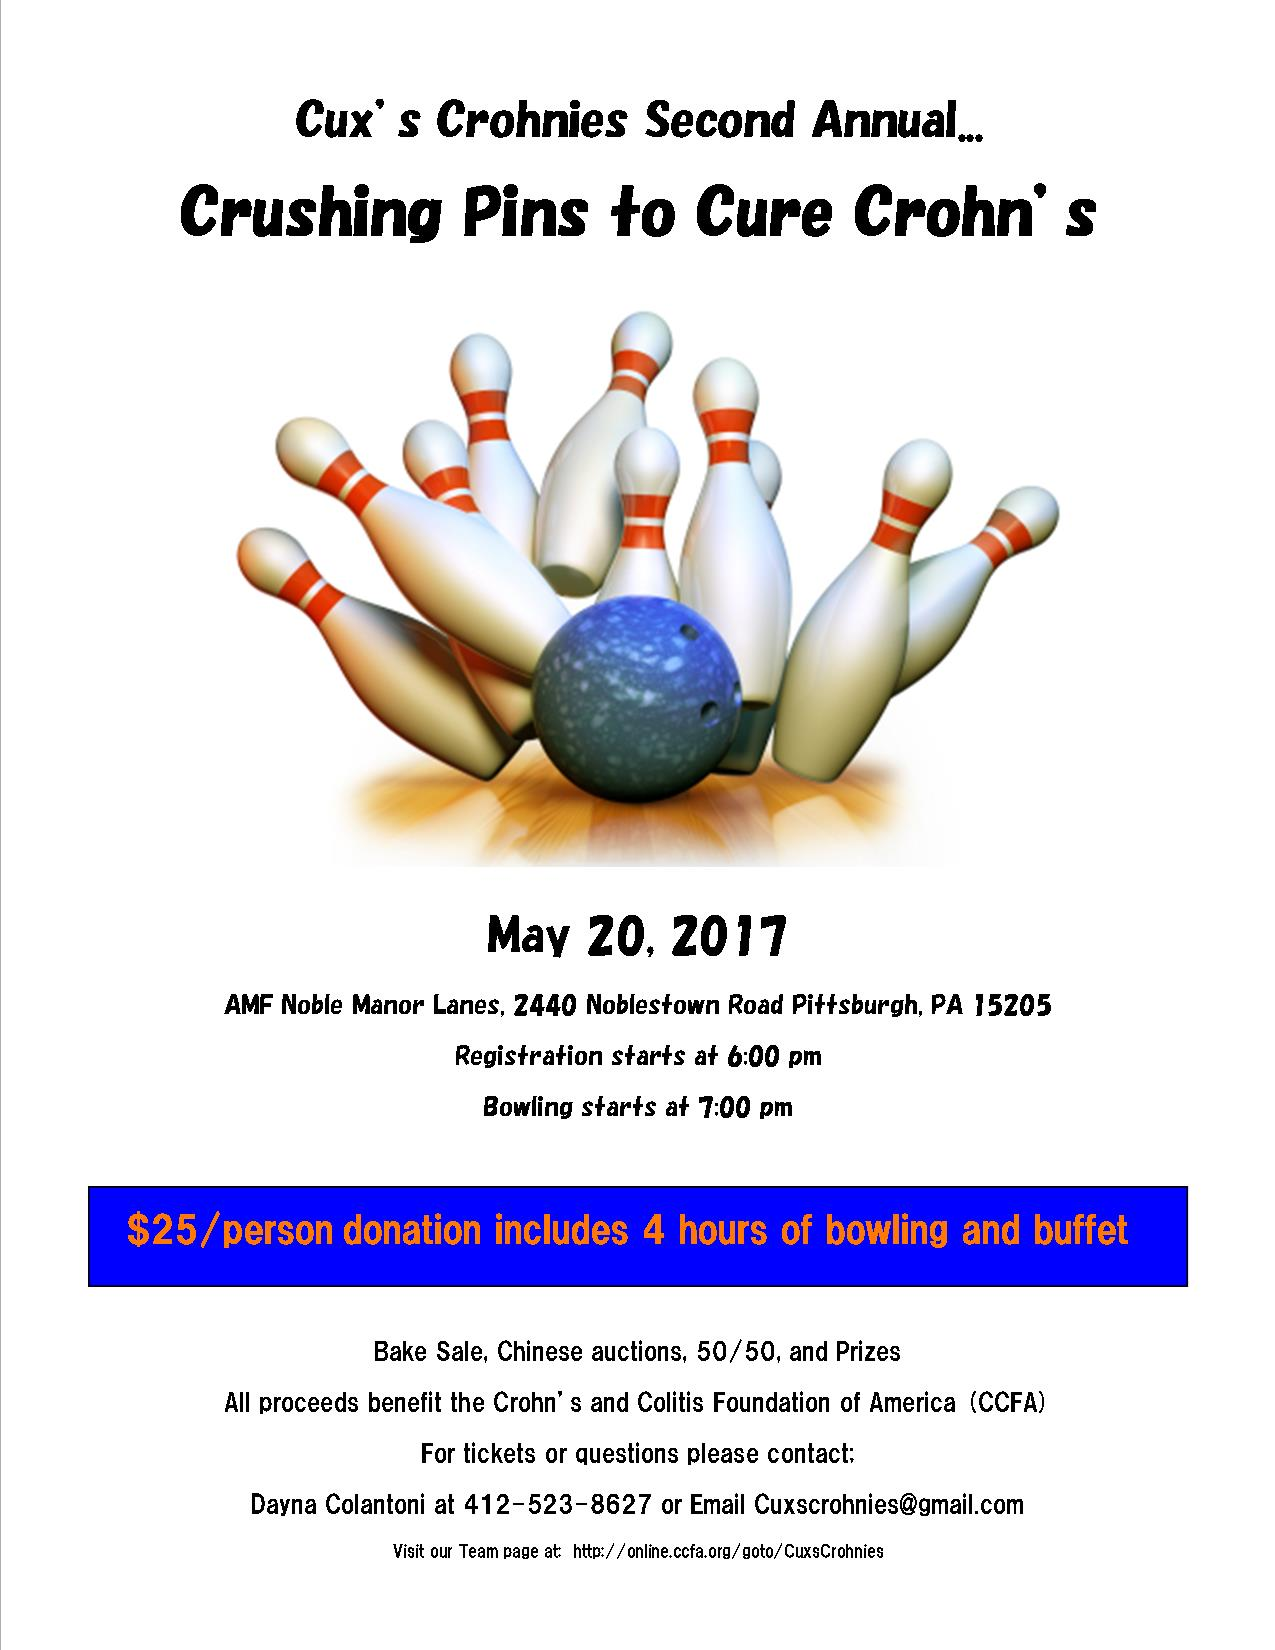 Cux's Crohnies Crushing Pins to Cure Crohn's